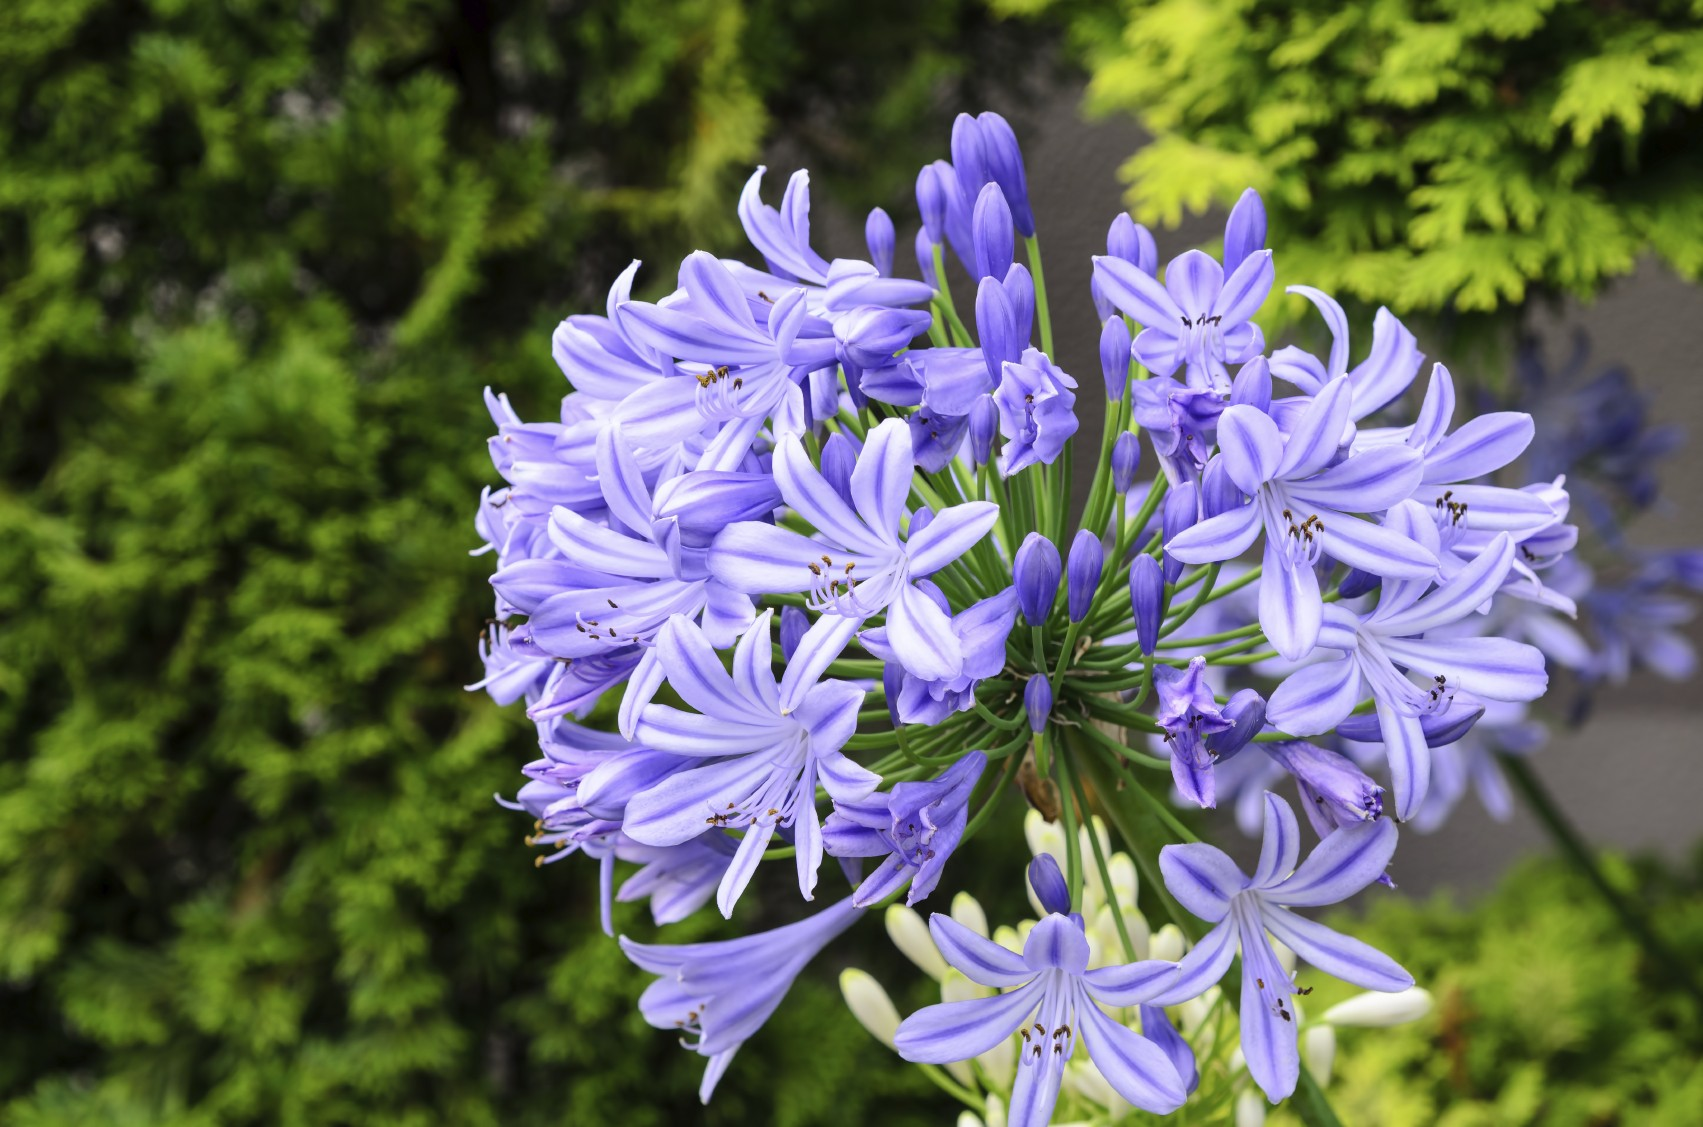 Agapanthus wallpapers